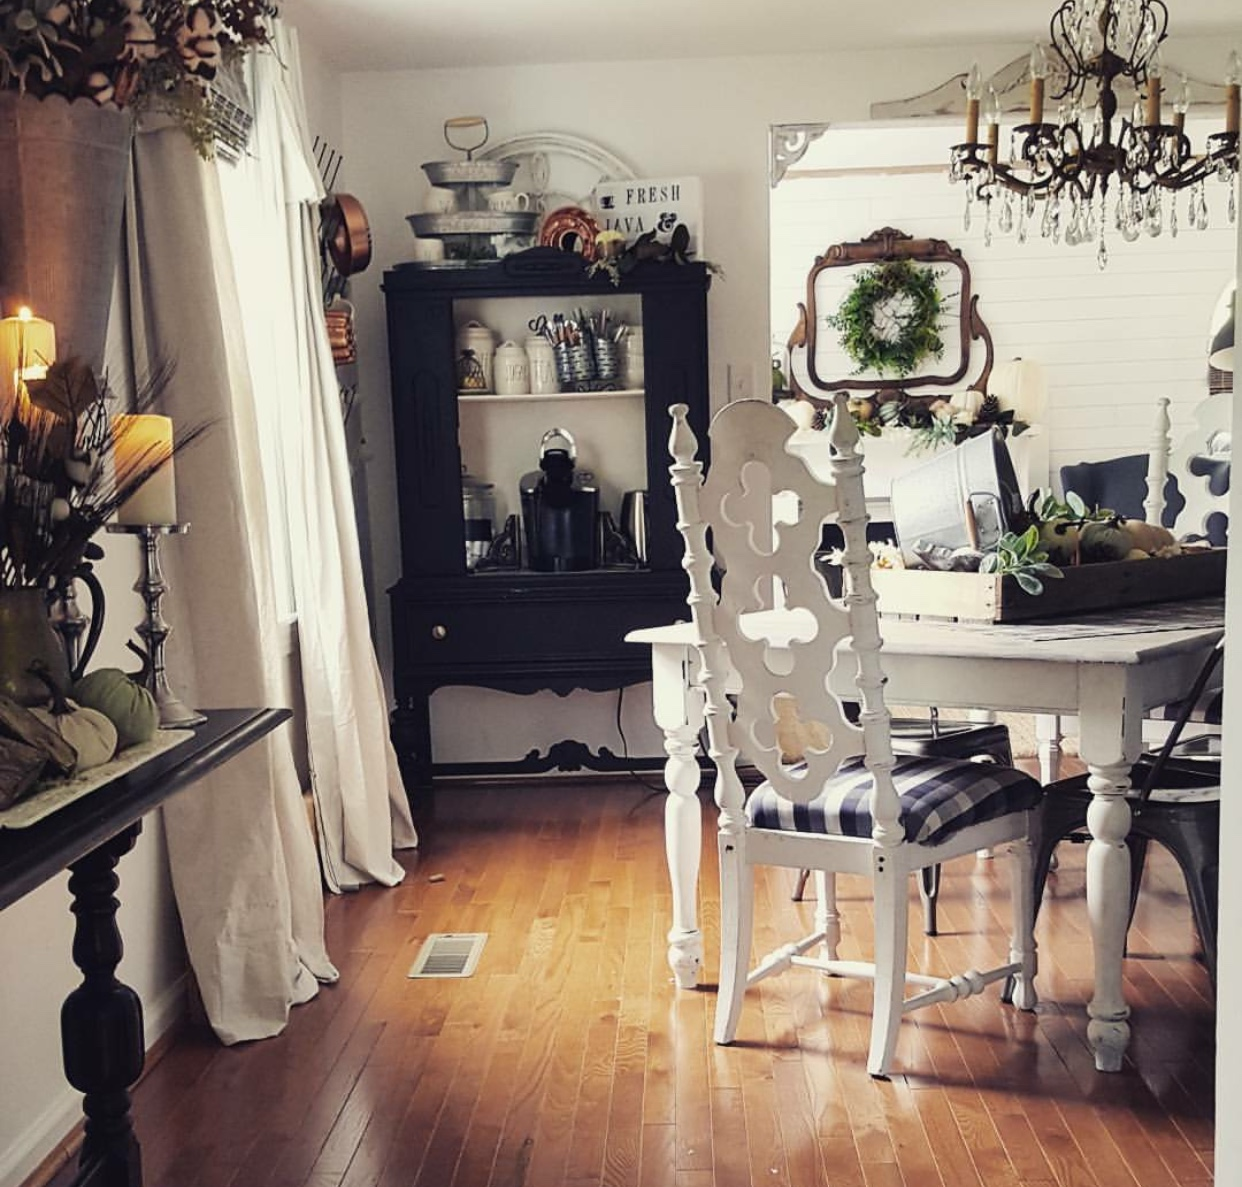 Gorgeous salvaged Antique mirror salvaged mantel with beautiful fall mantel decor pumpkins